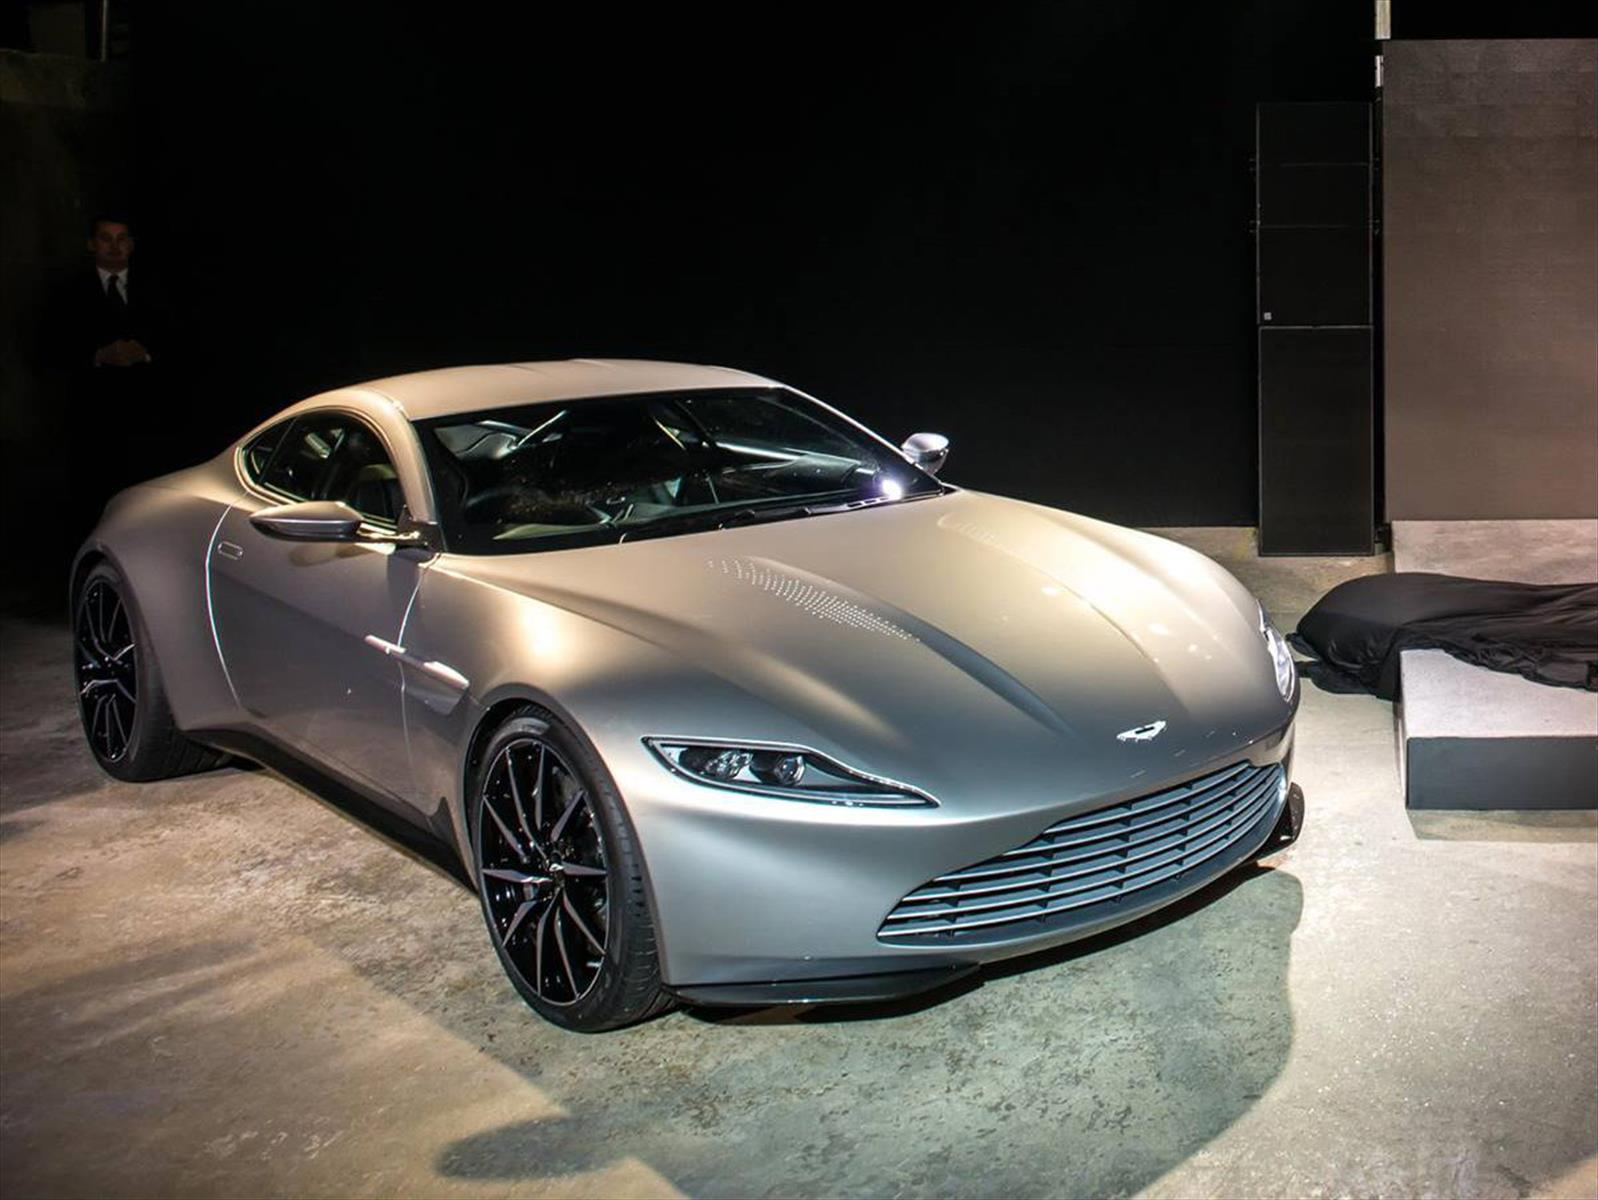 aston martin db10 es el nuevo auto de james bond. Black Bedroom Furniture Sets. Home Design Ideas